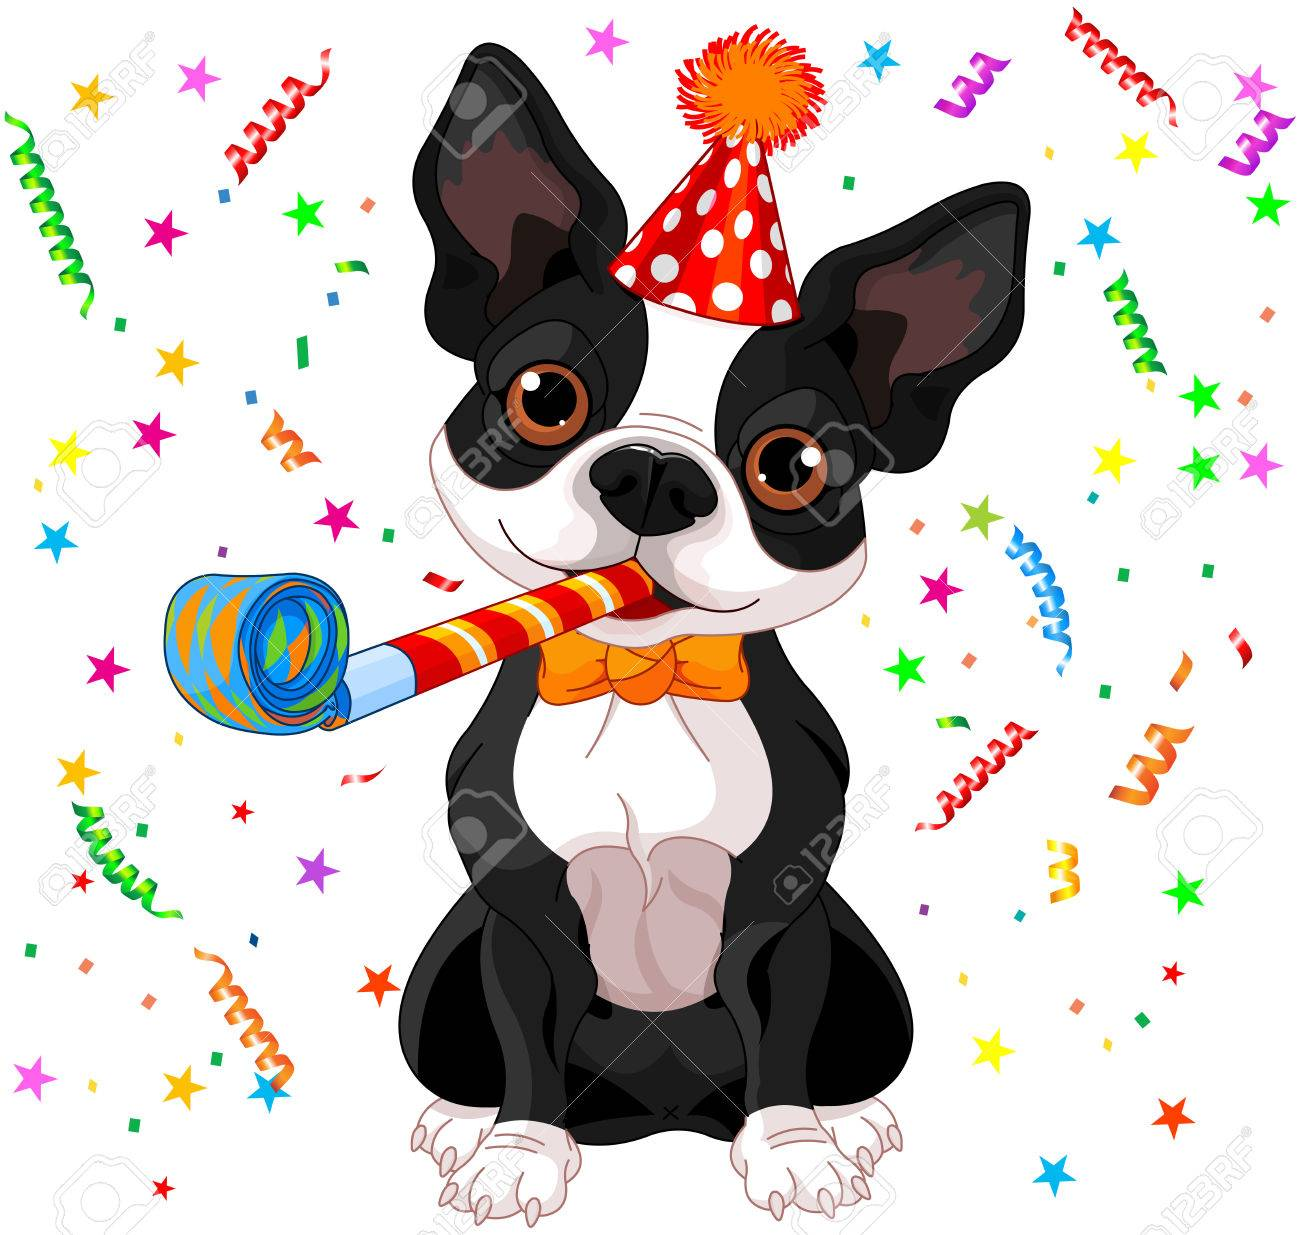 Soigner un chien/cheval/chat aux huiles essentielles (Nelly Grosjean) 35588778-illustration-of-cute-boston-terrier-celebrating